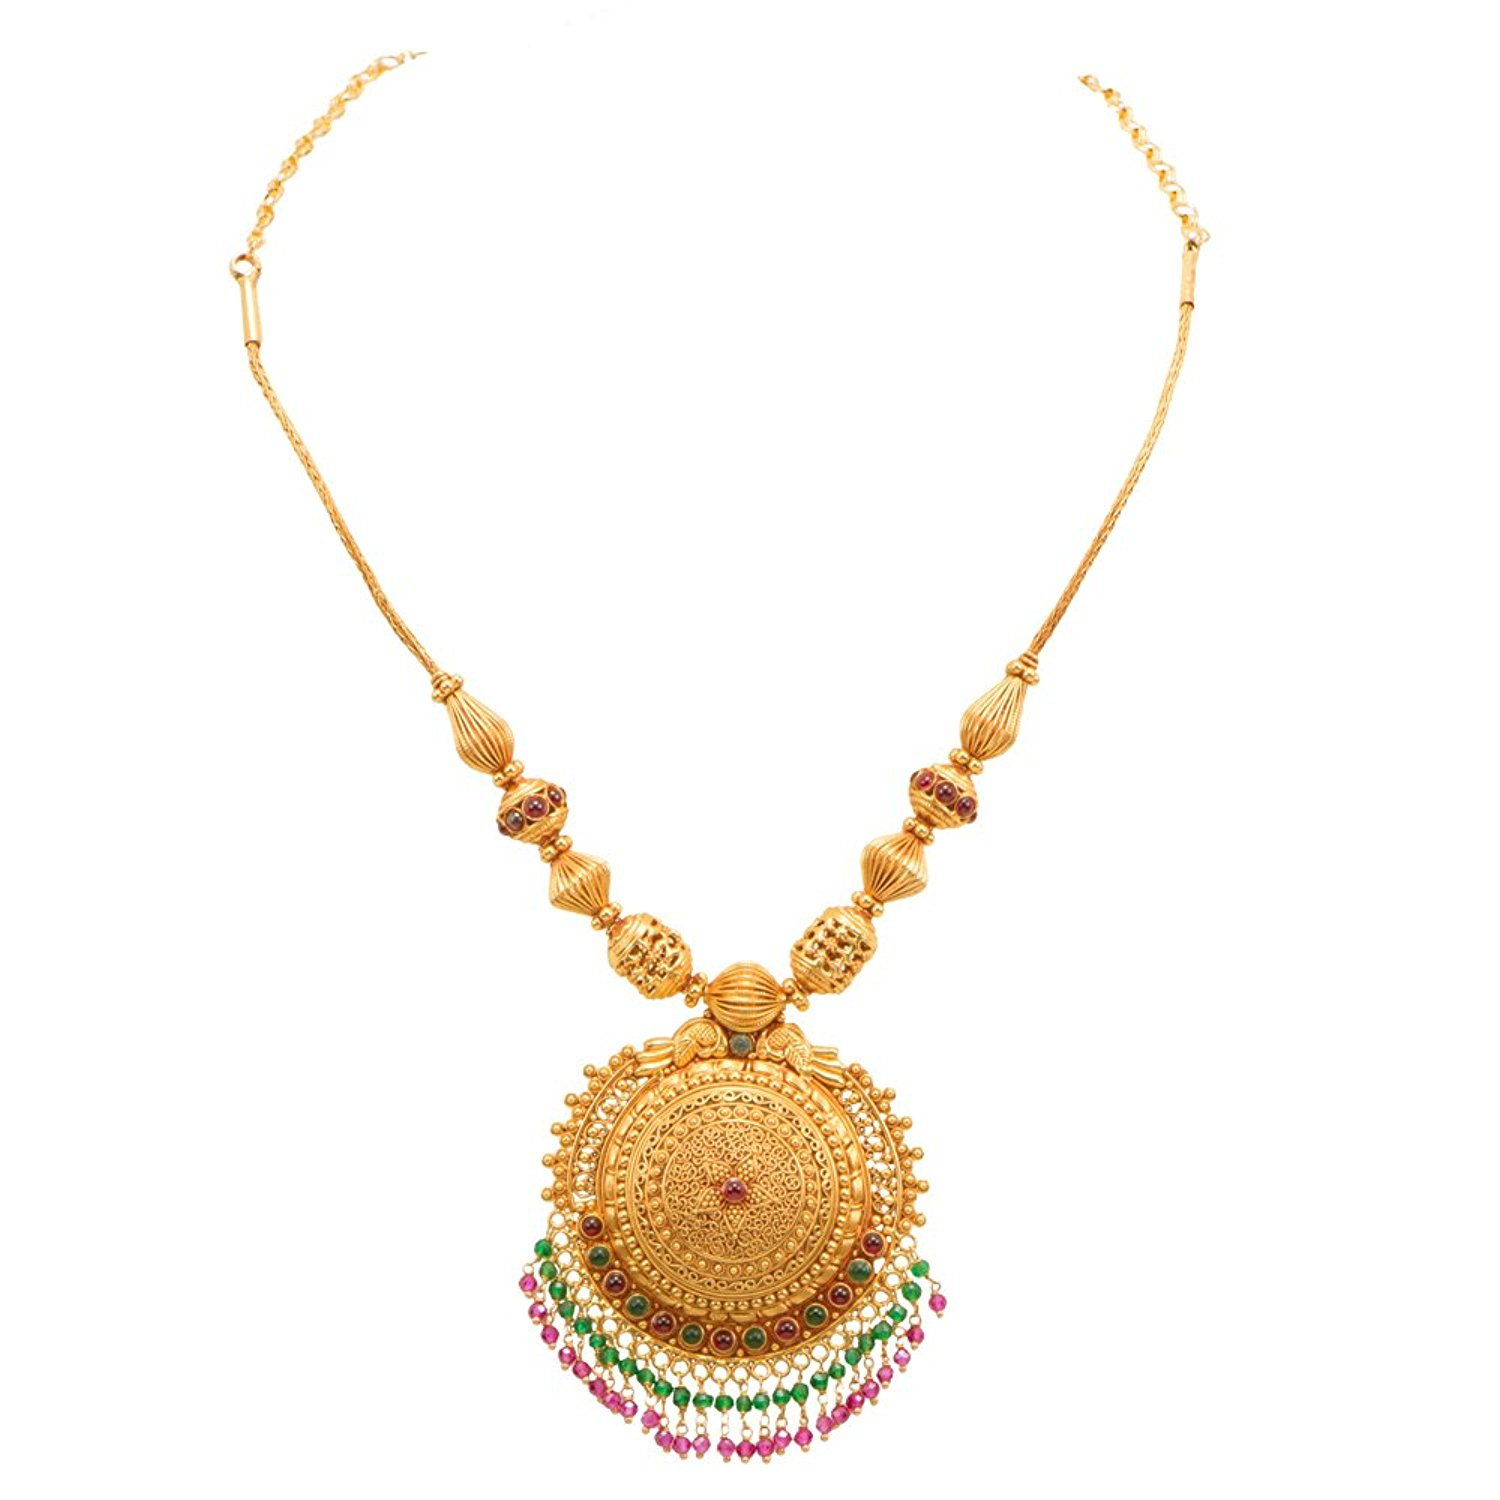 702b6bb2ec8 Necklace, Gold Necklace (22Kt Purity)